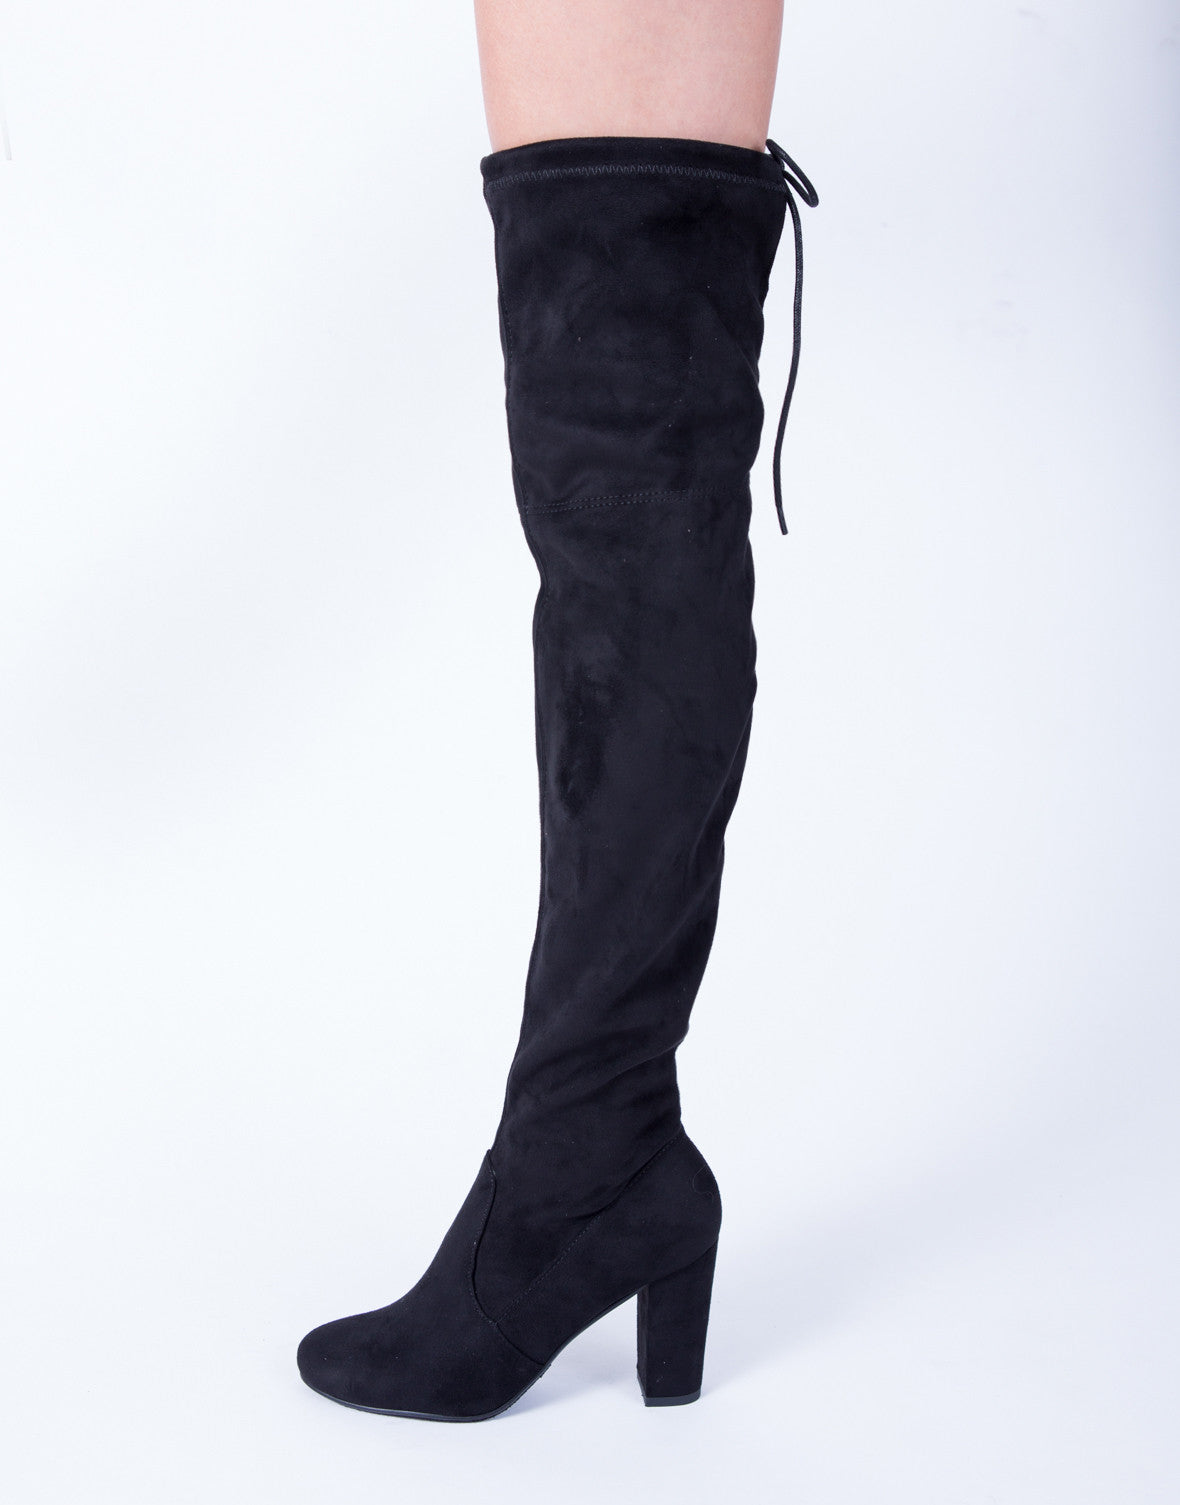 76b0aa5594 Back Tie Over-the-Knee Boots - Black Suede Over the Knee Boots - Black Tall  Boots – 2020AVE